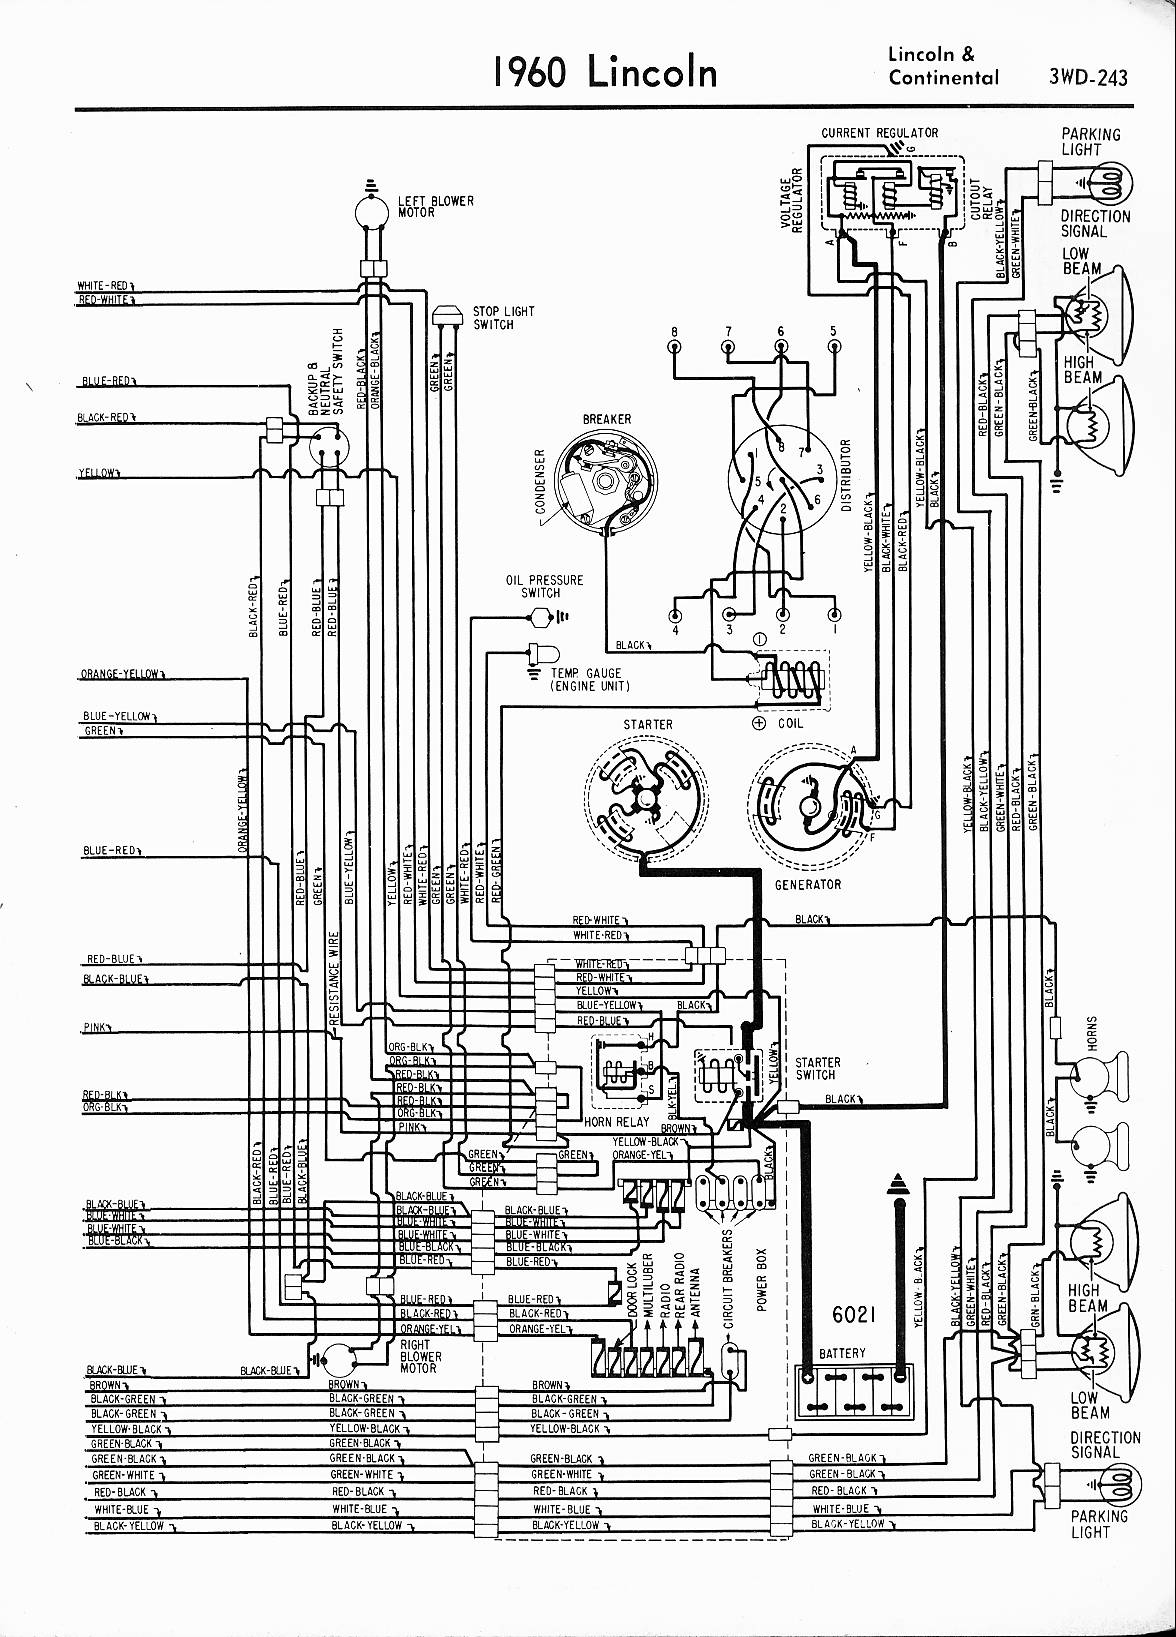 1964 lincoln vacuum wiring diagram schematics wiring diagrams u2022 rh  parntesis co 2003 lincoln aviator stereo wiring diagram 2003 lincoln ls radio  wiring ...